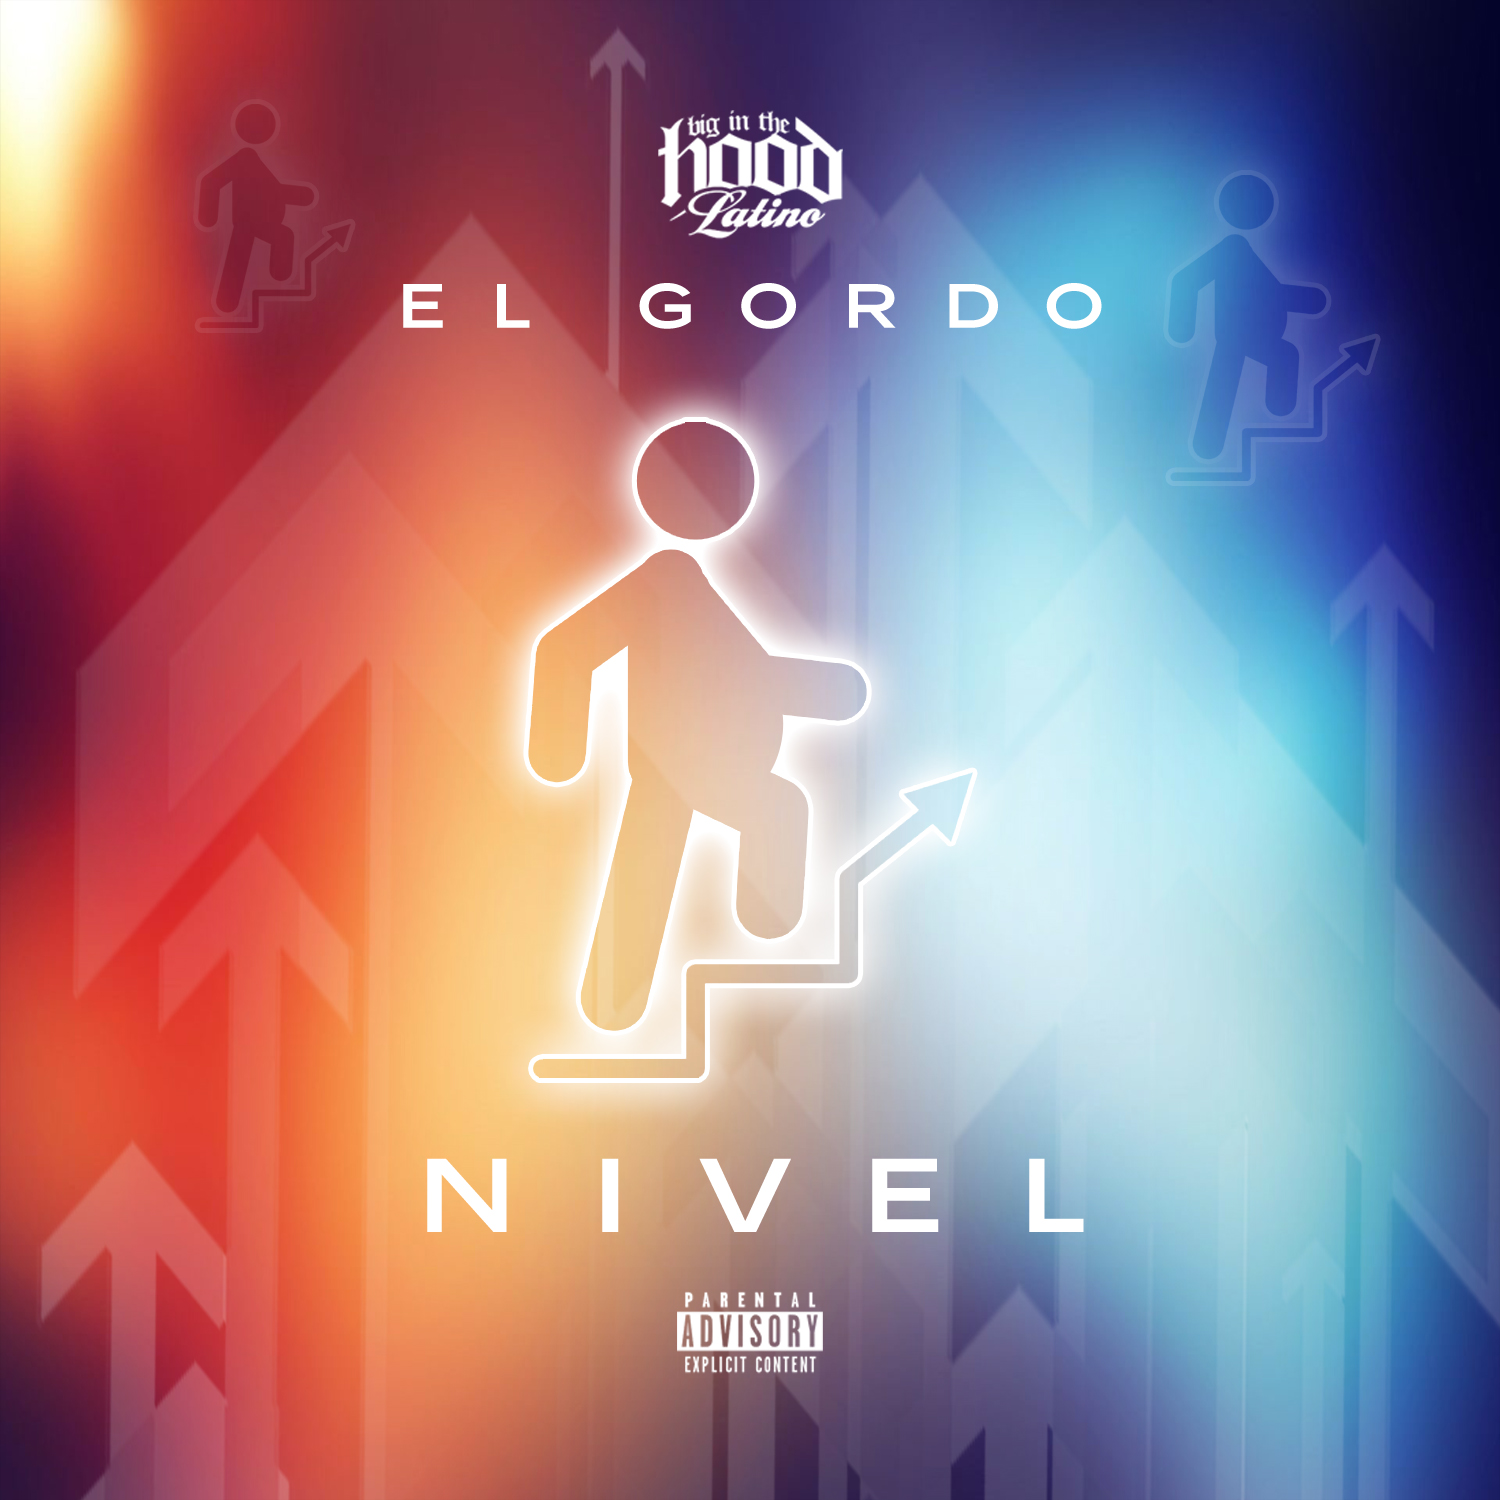 """El Gordo Is Back With A New Freestyle """"Nivel"""" features an insane beat from Honorable C-Note. The turn up is in full effect. #BigInTheHoodLatino"""